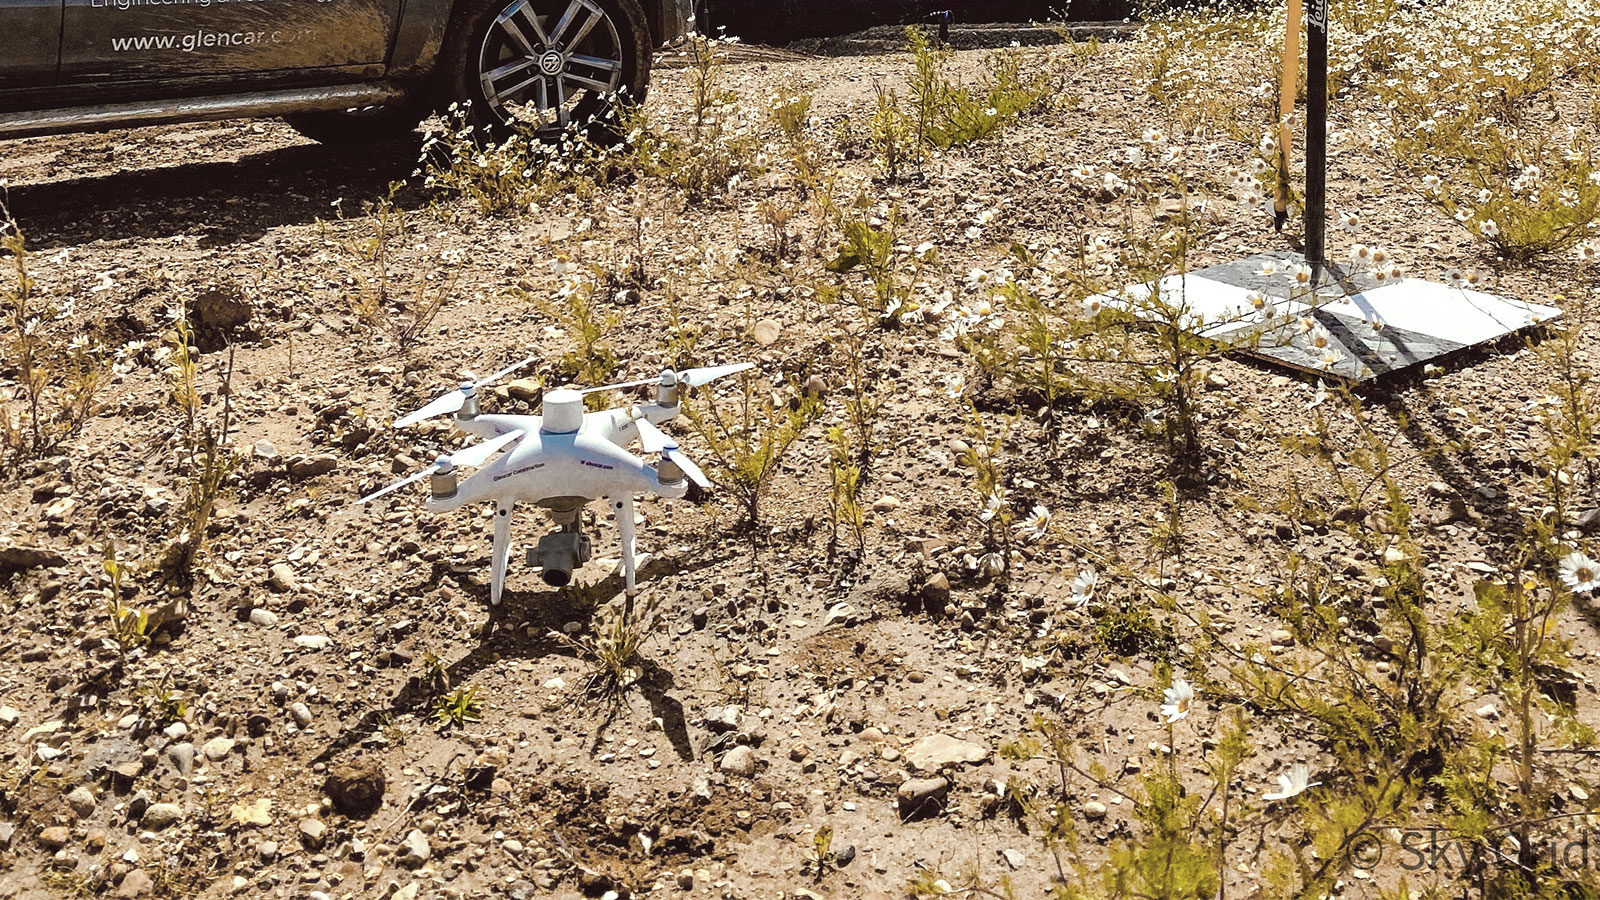 drone ready to launch for site surveying